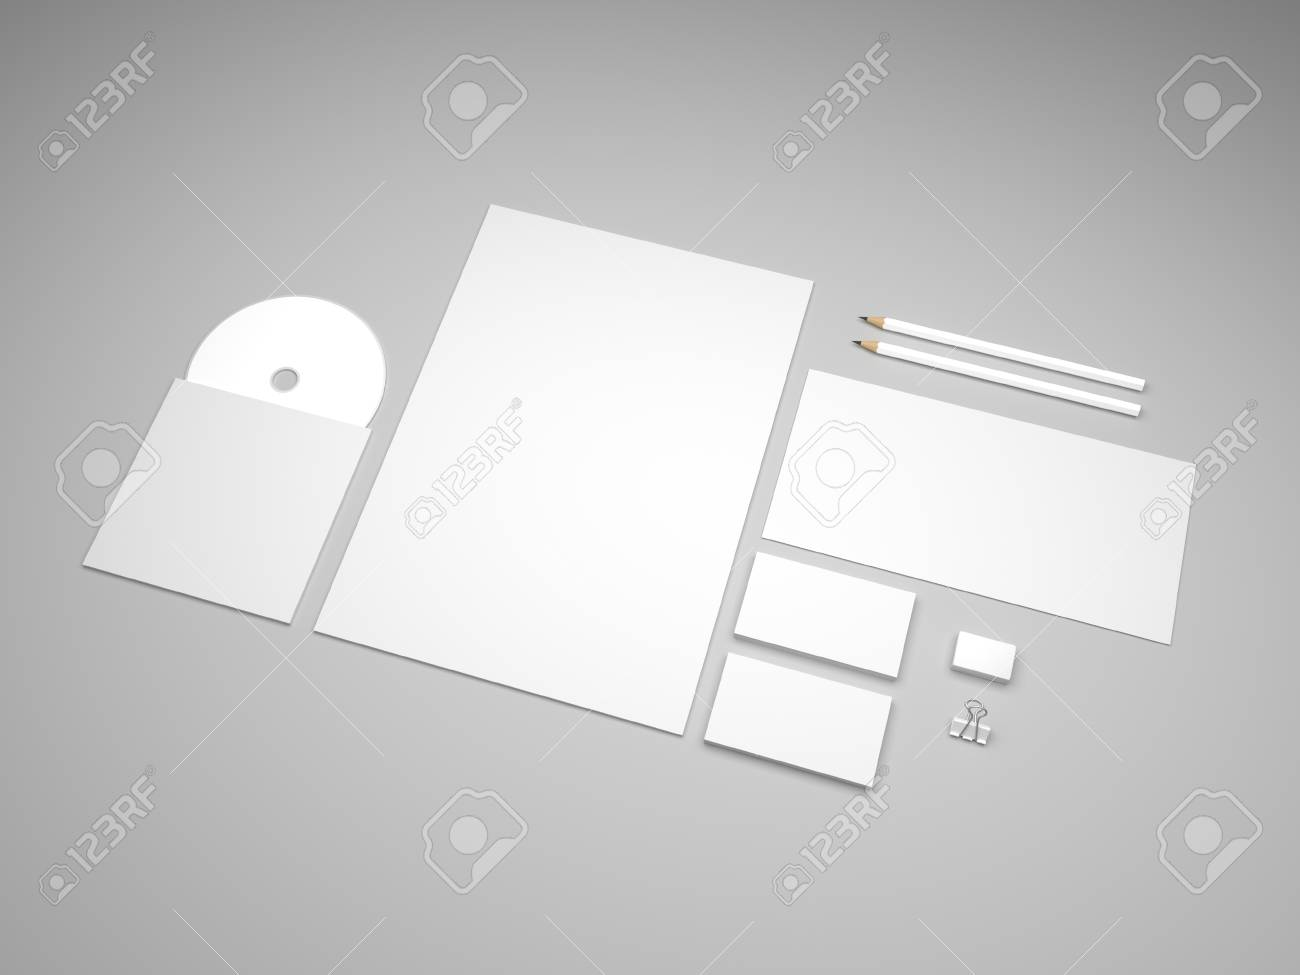 Stationery Mockup With Envelope, Business Cards And Letterhead ...